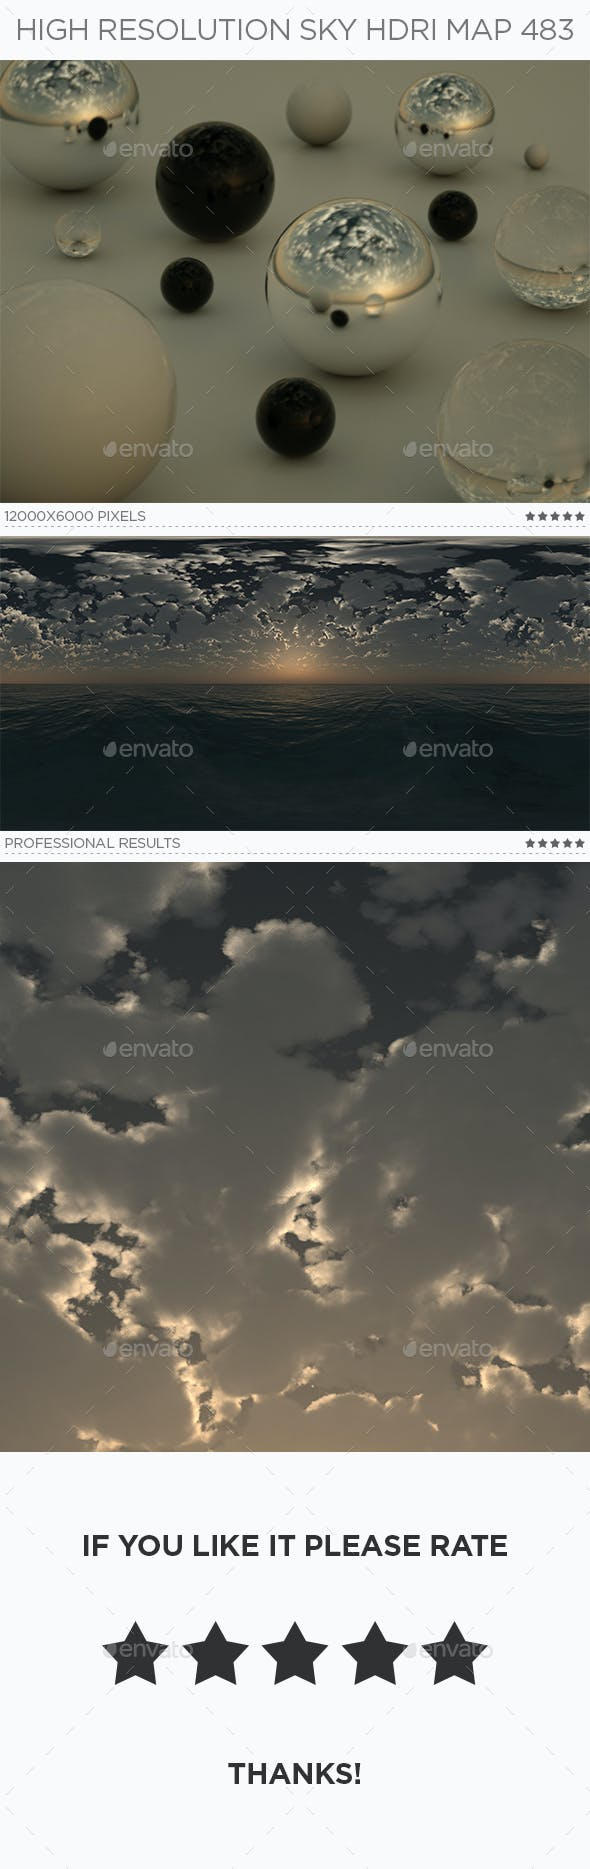 High Resolution Sky HDRi Map 483 - 3DOcean Item for Sale